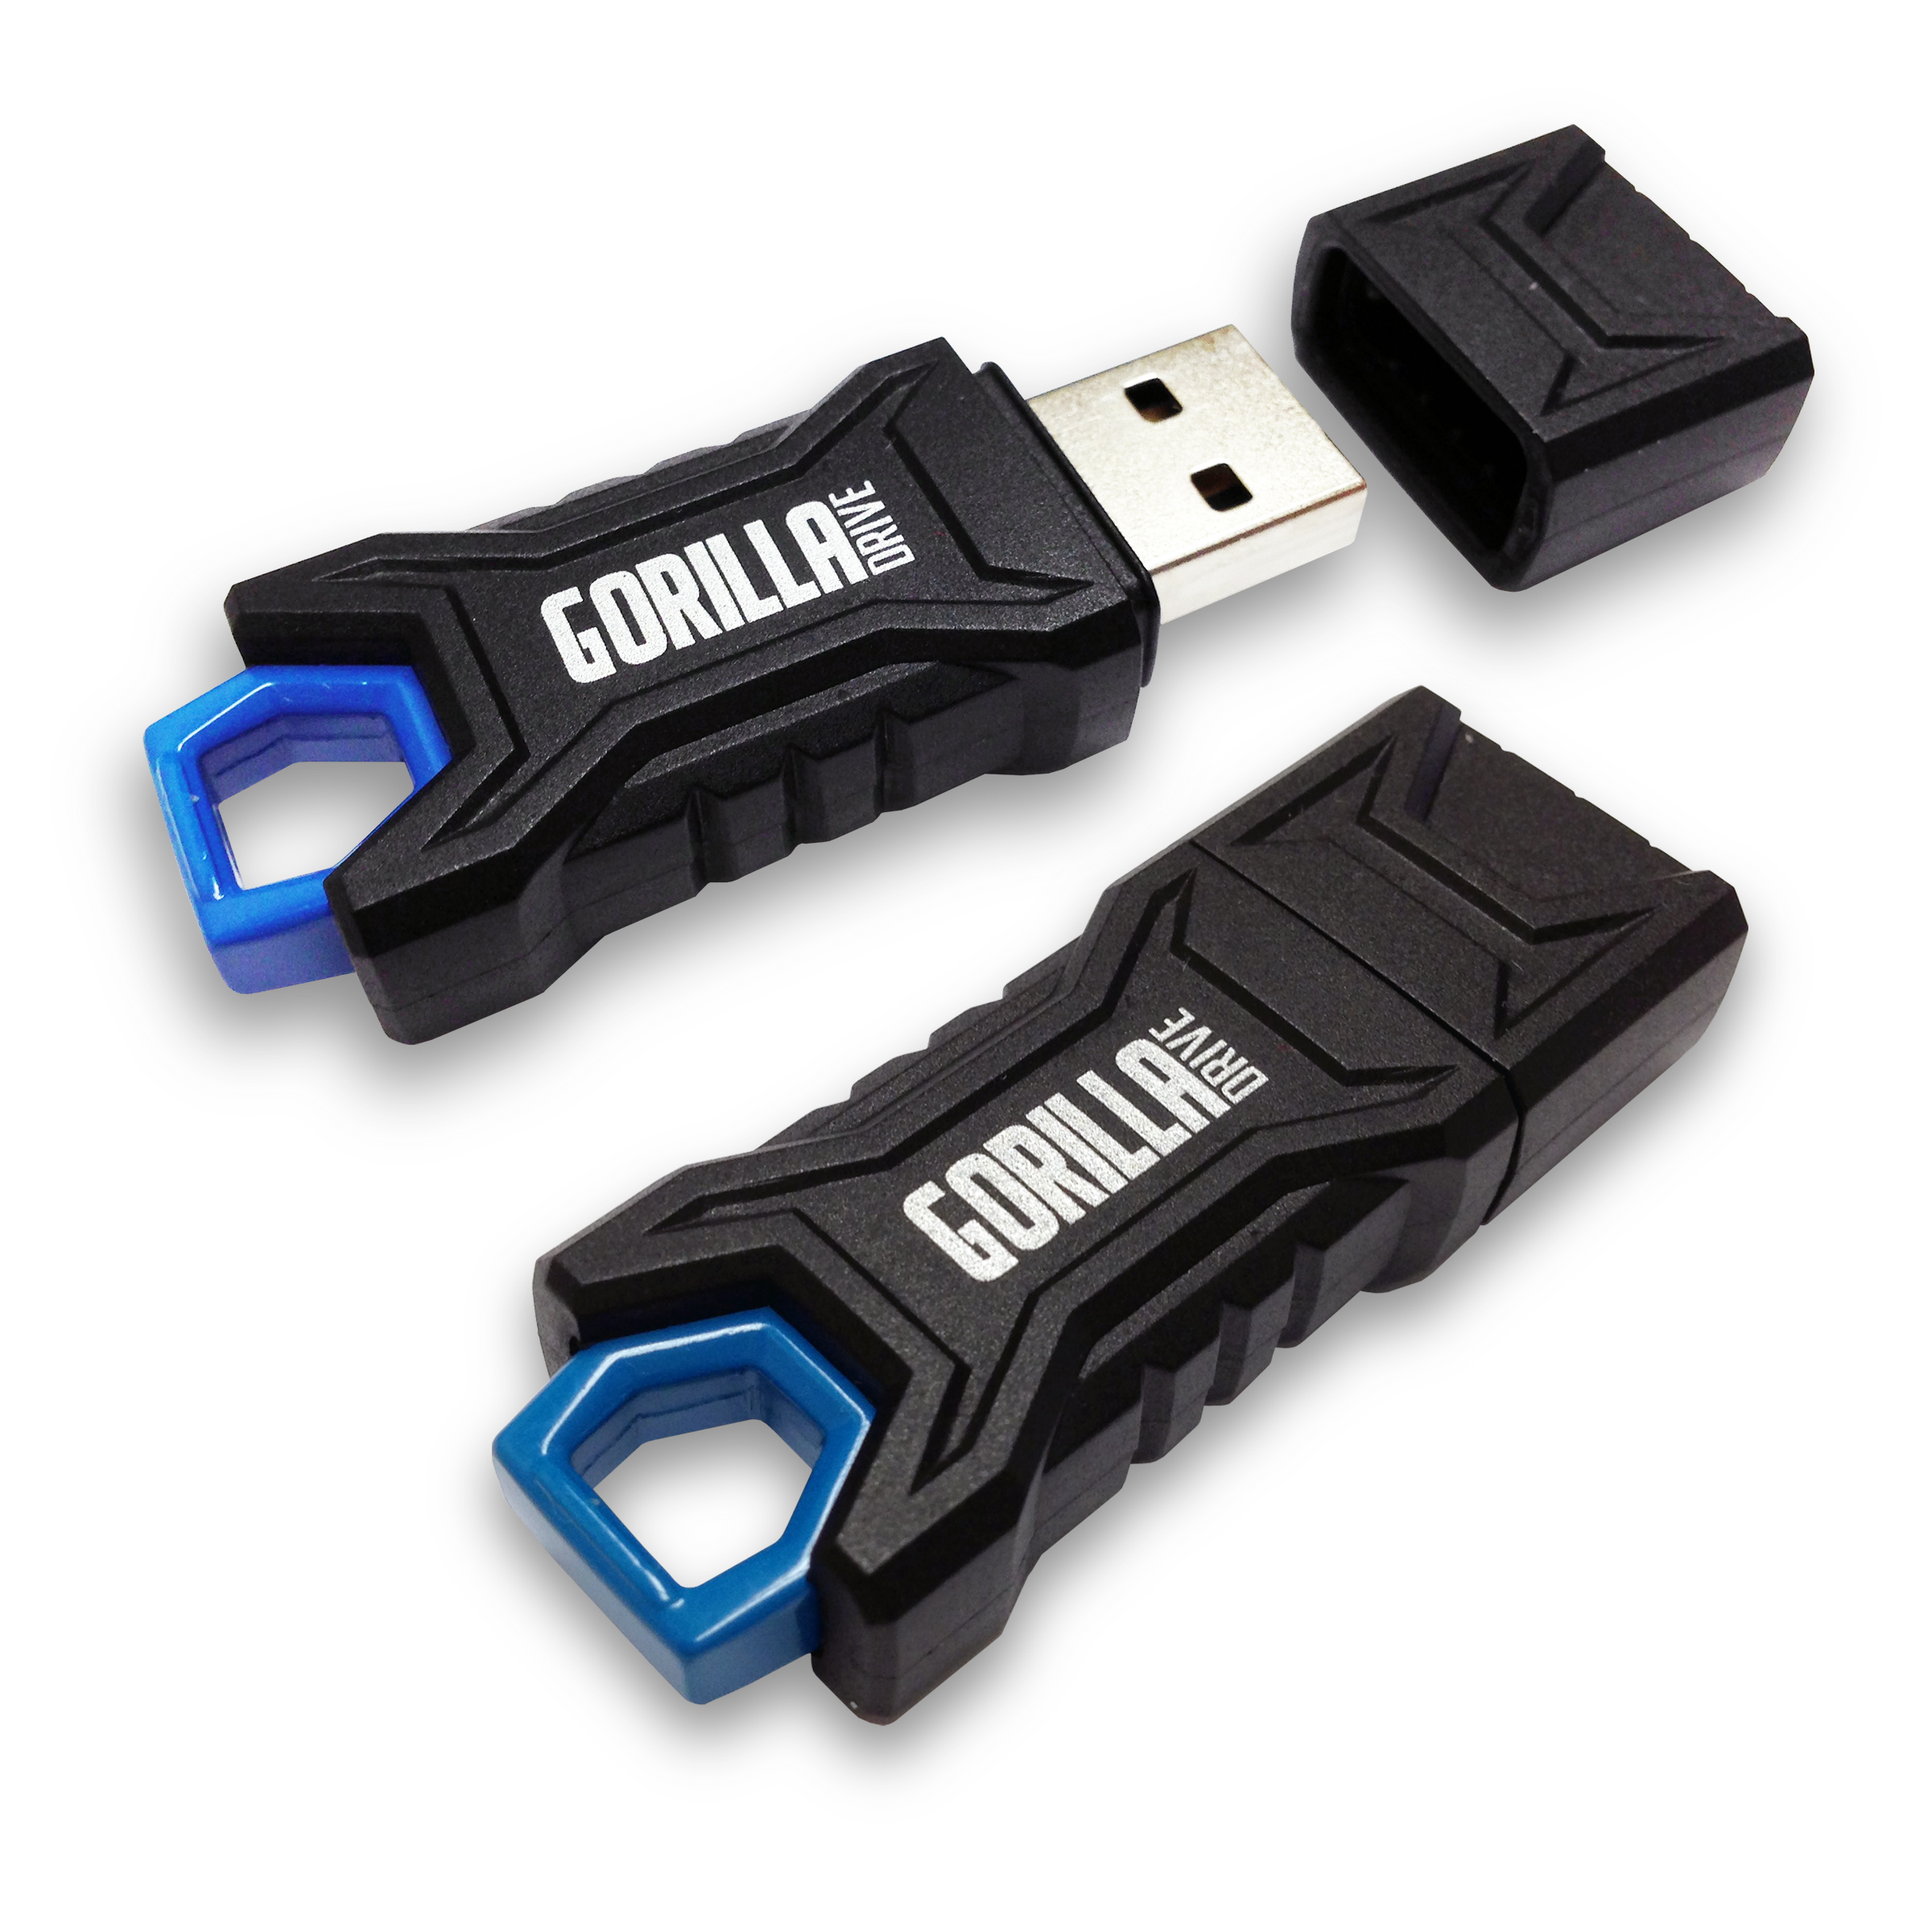 GorillaDrive 32GB Ruggedized USB Flash Drive